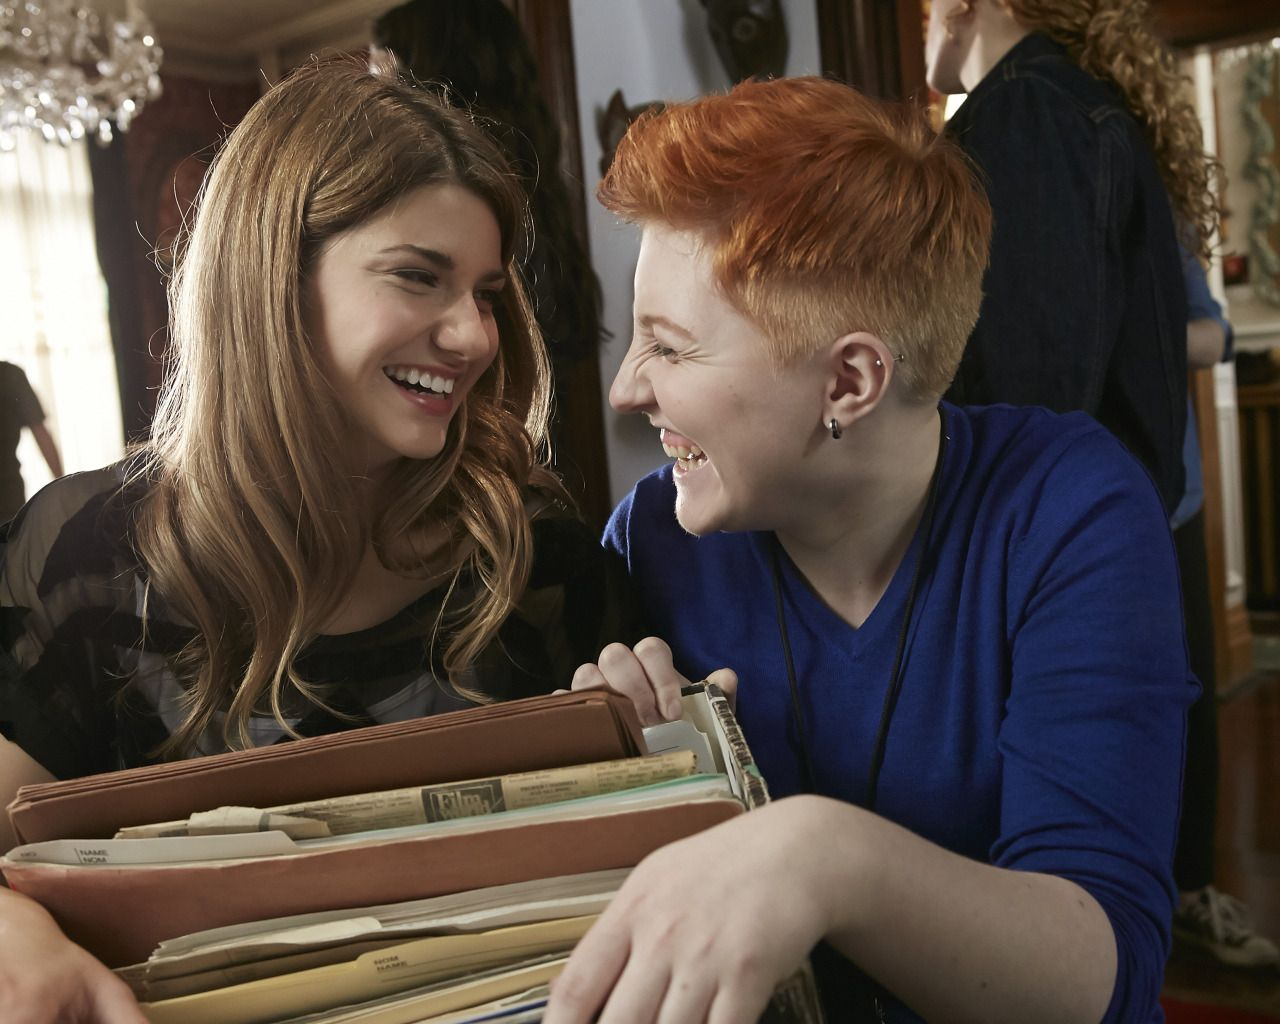 Carmillas2 Look At These Happy Dorks Elise Bauman As